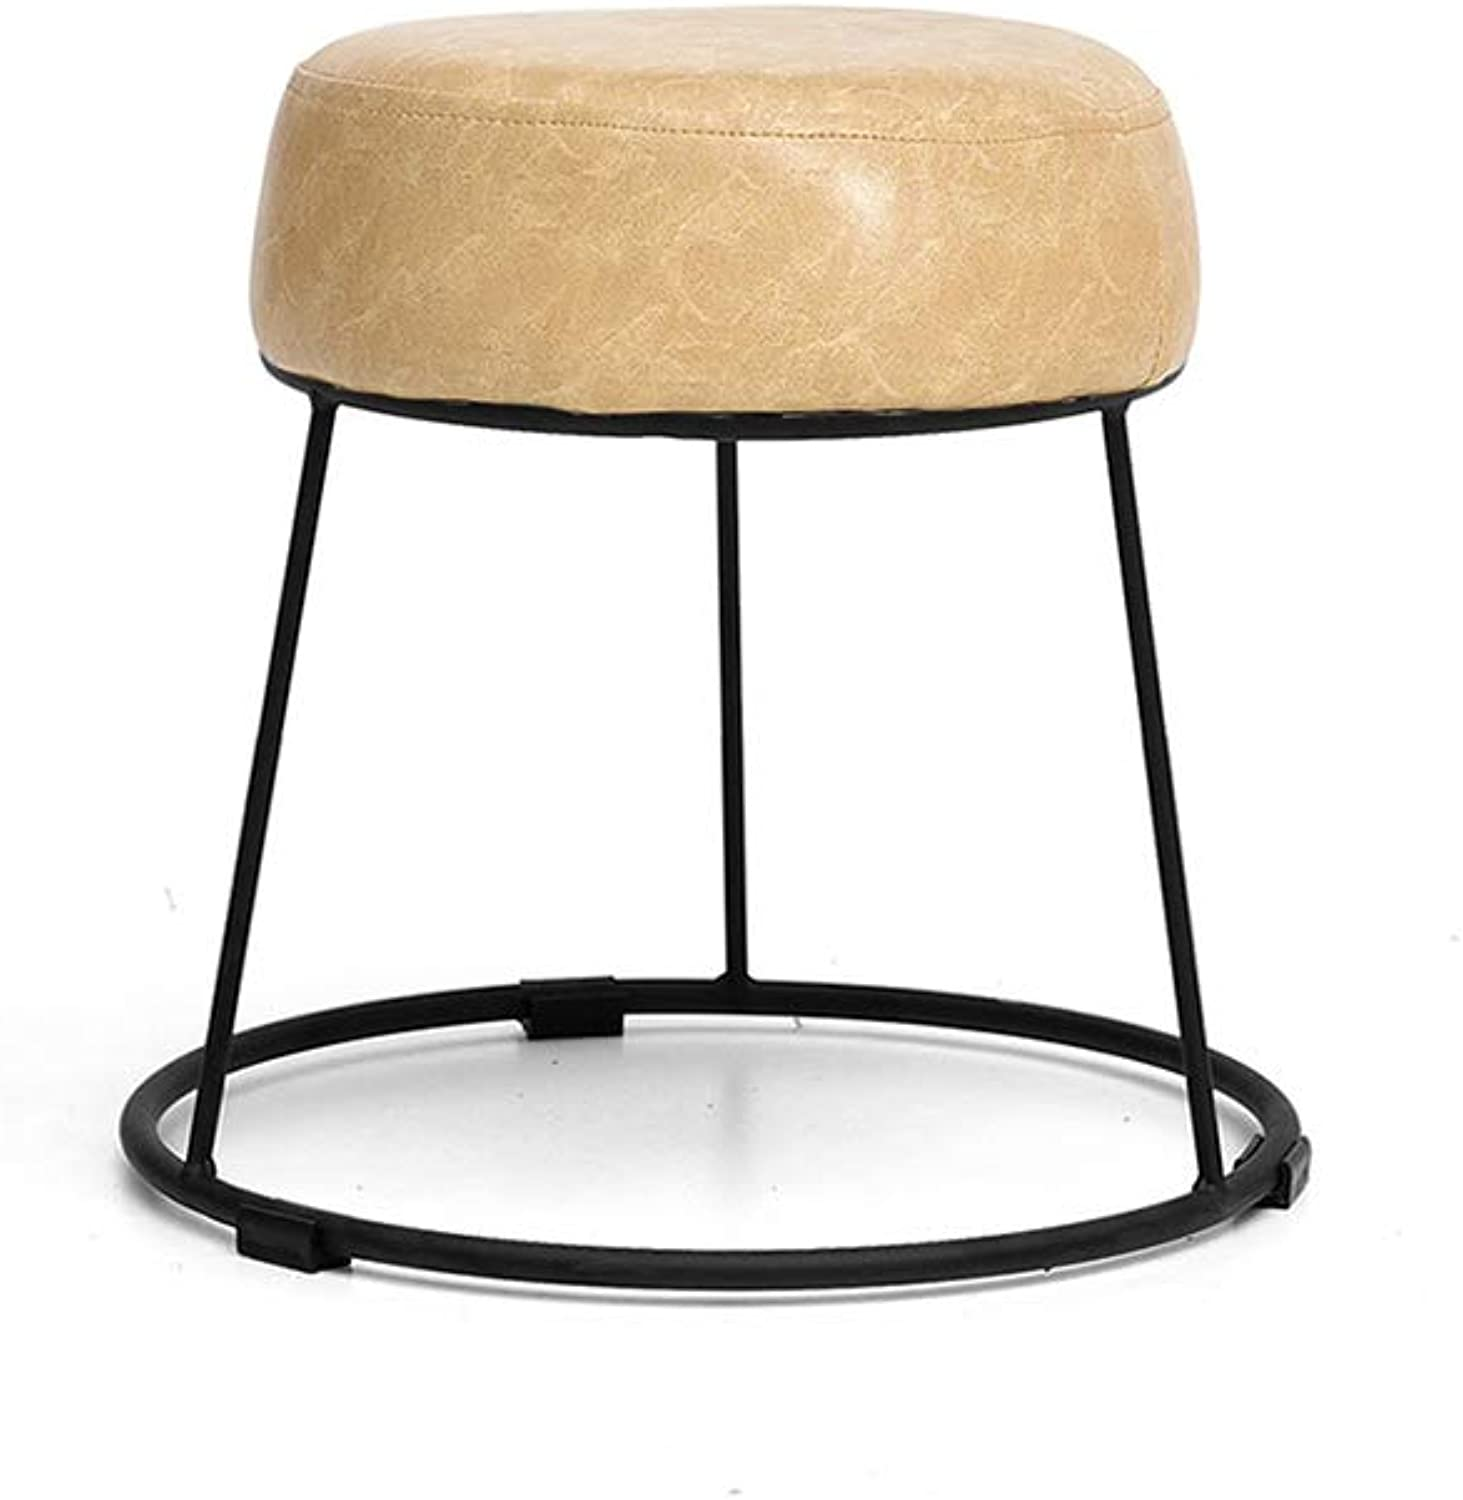 LJHA ertongcanyi Upholstered Footstool, Round Wrought Iron Fabric Sofa Living Room Bedroom Home Stool Change shoes Bench (color   3, Size   28.5  36cm)